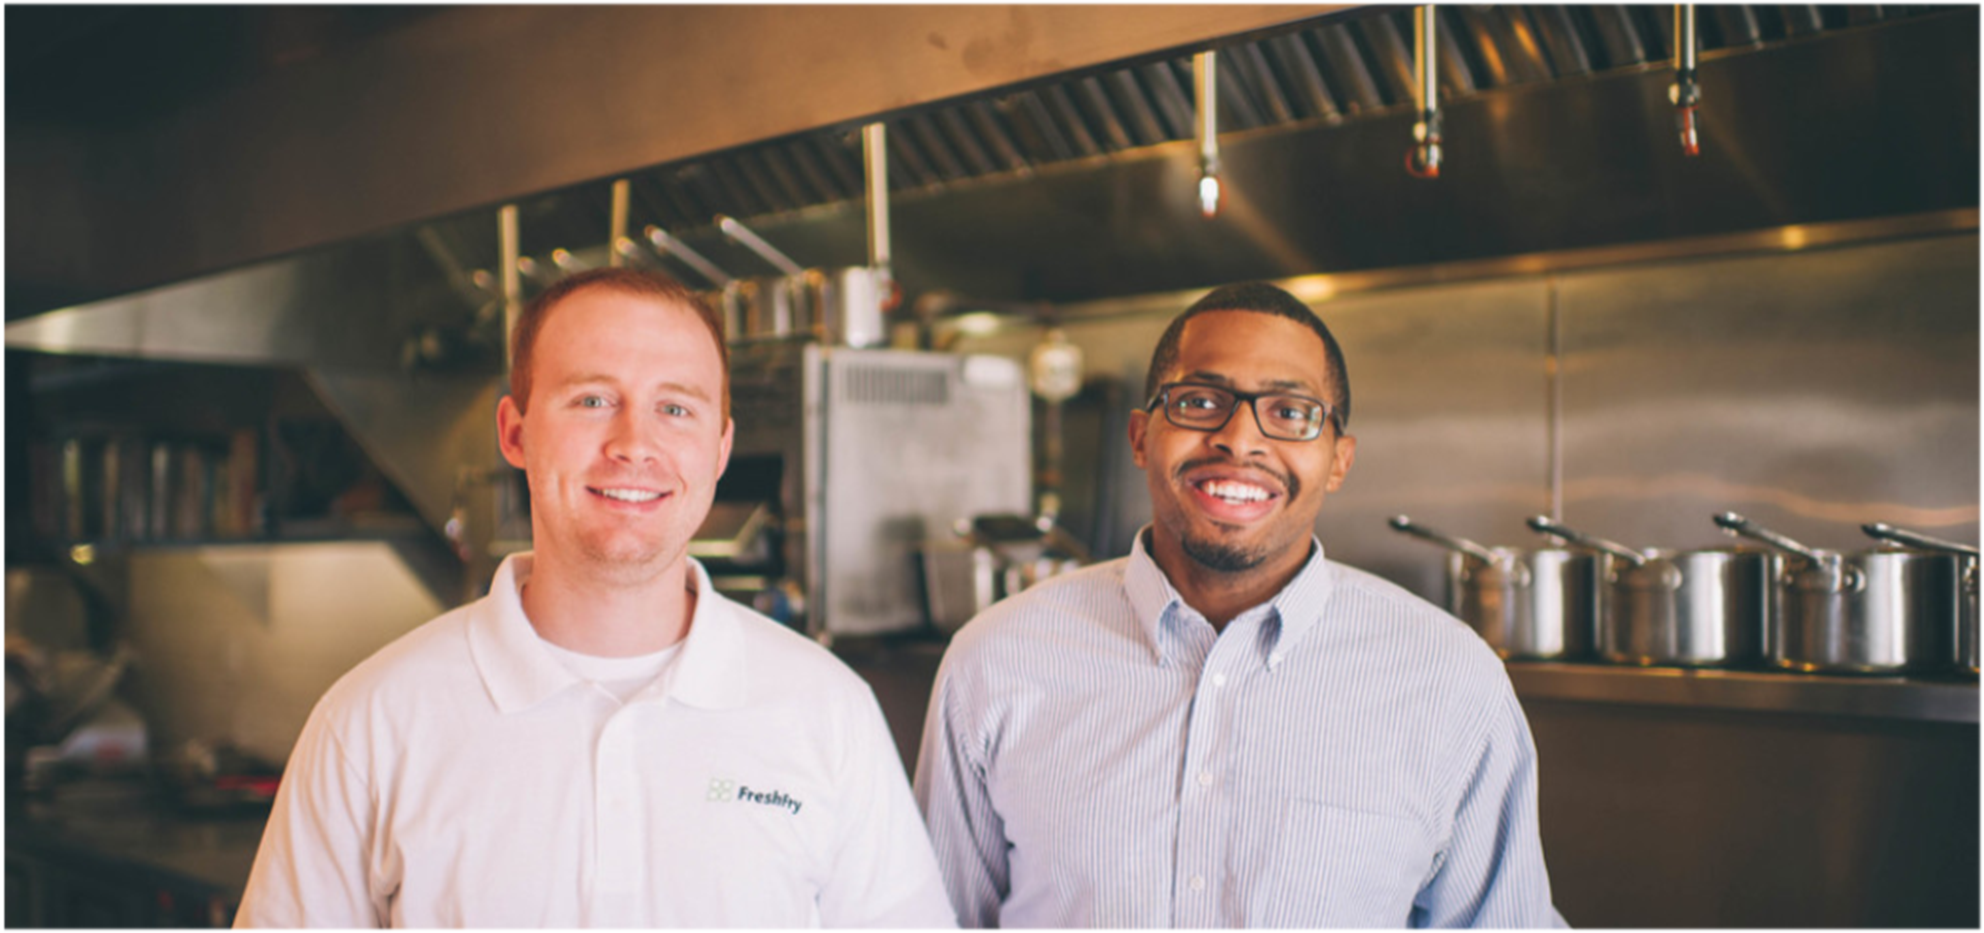 FreshFry. Jeremiah Chapman on the right, Jacob Huff, cofounder and COO, on the left.